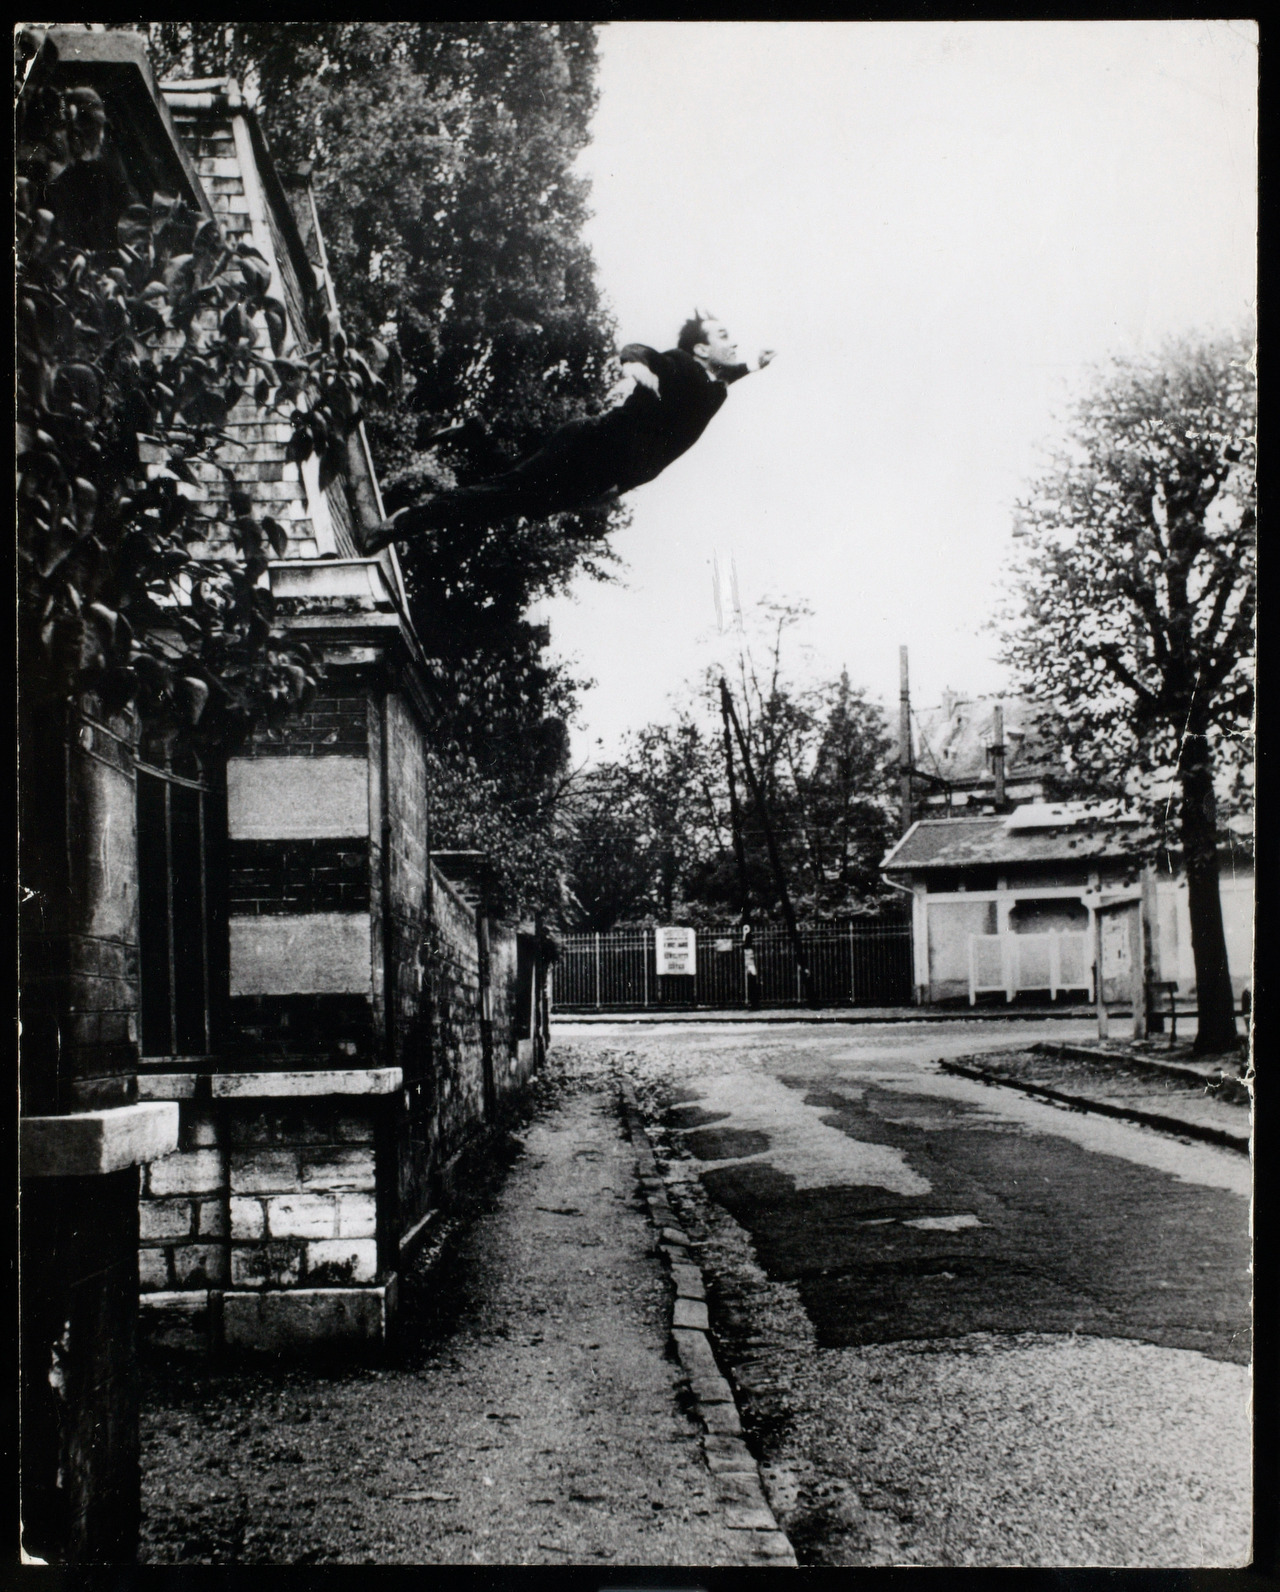 laura-morrow:  Yves Klein Obsession de la levitation (Leap into the void), 1960